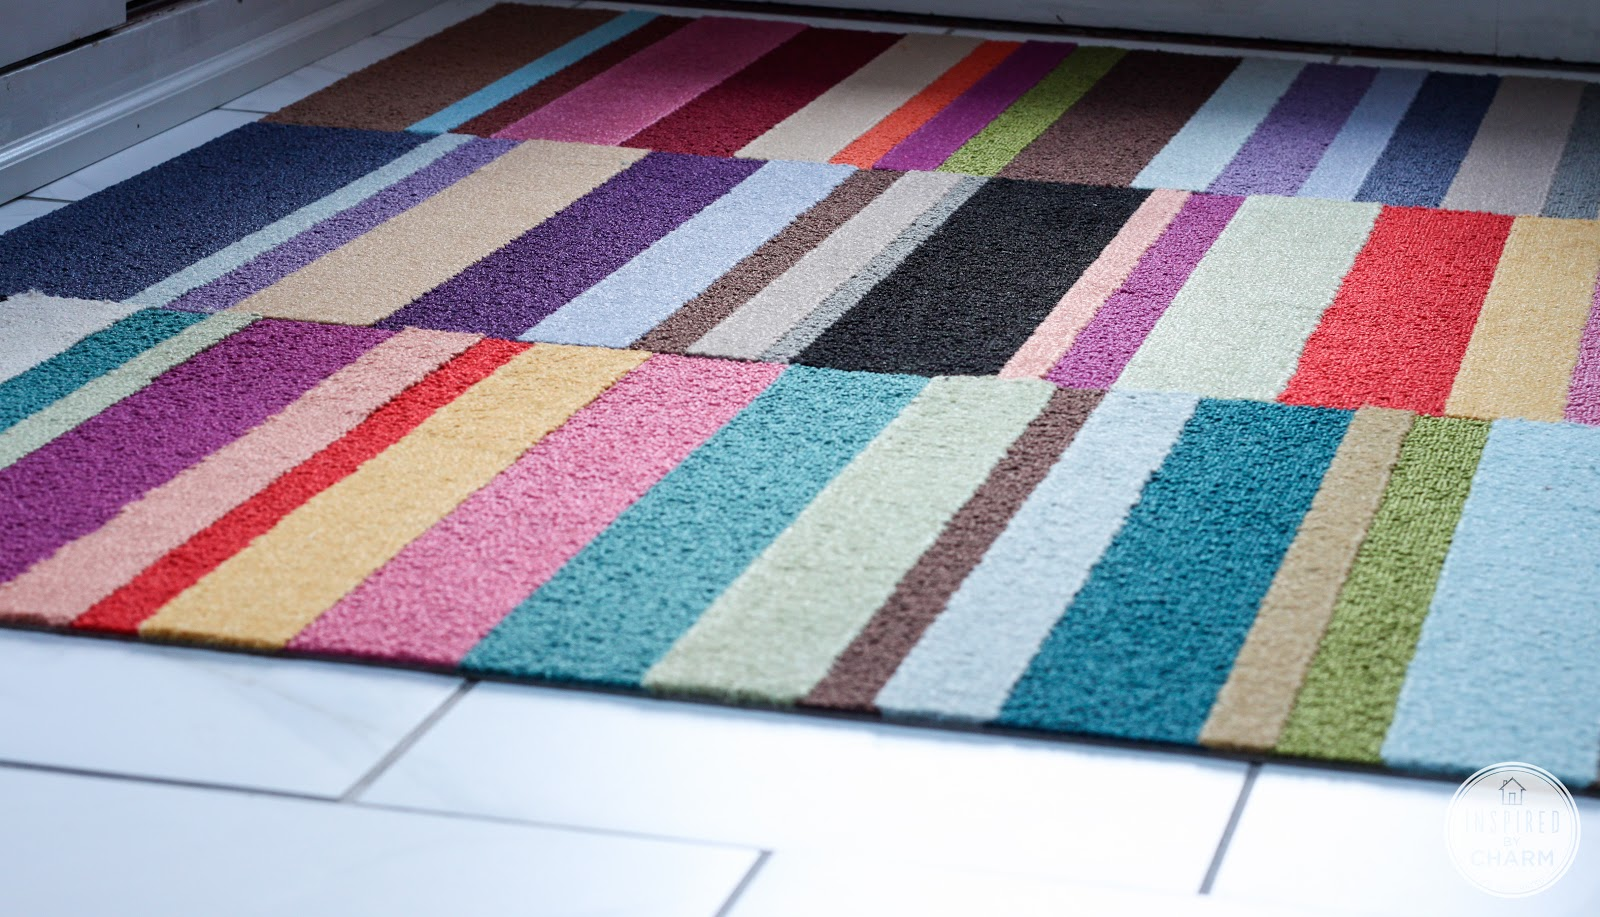 And that's it, friends! My new, colorful rug!